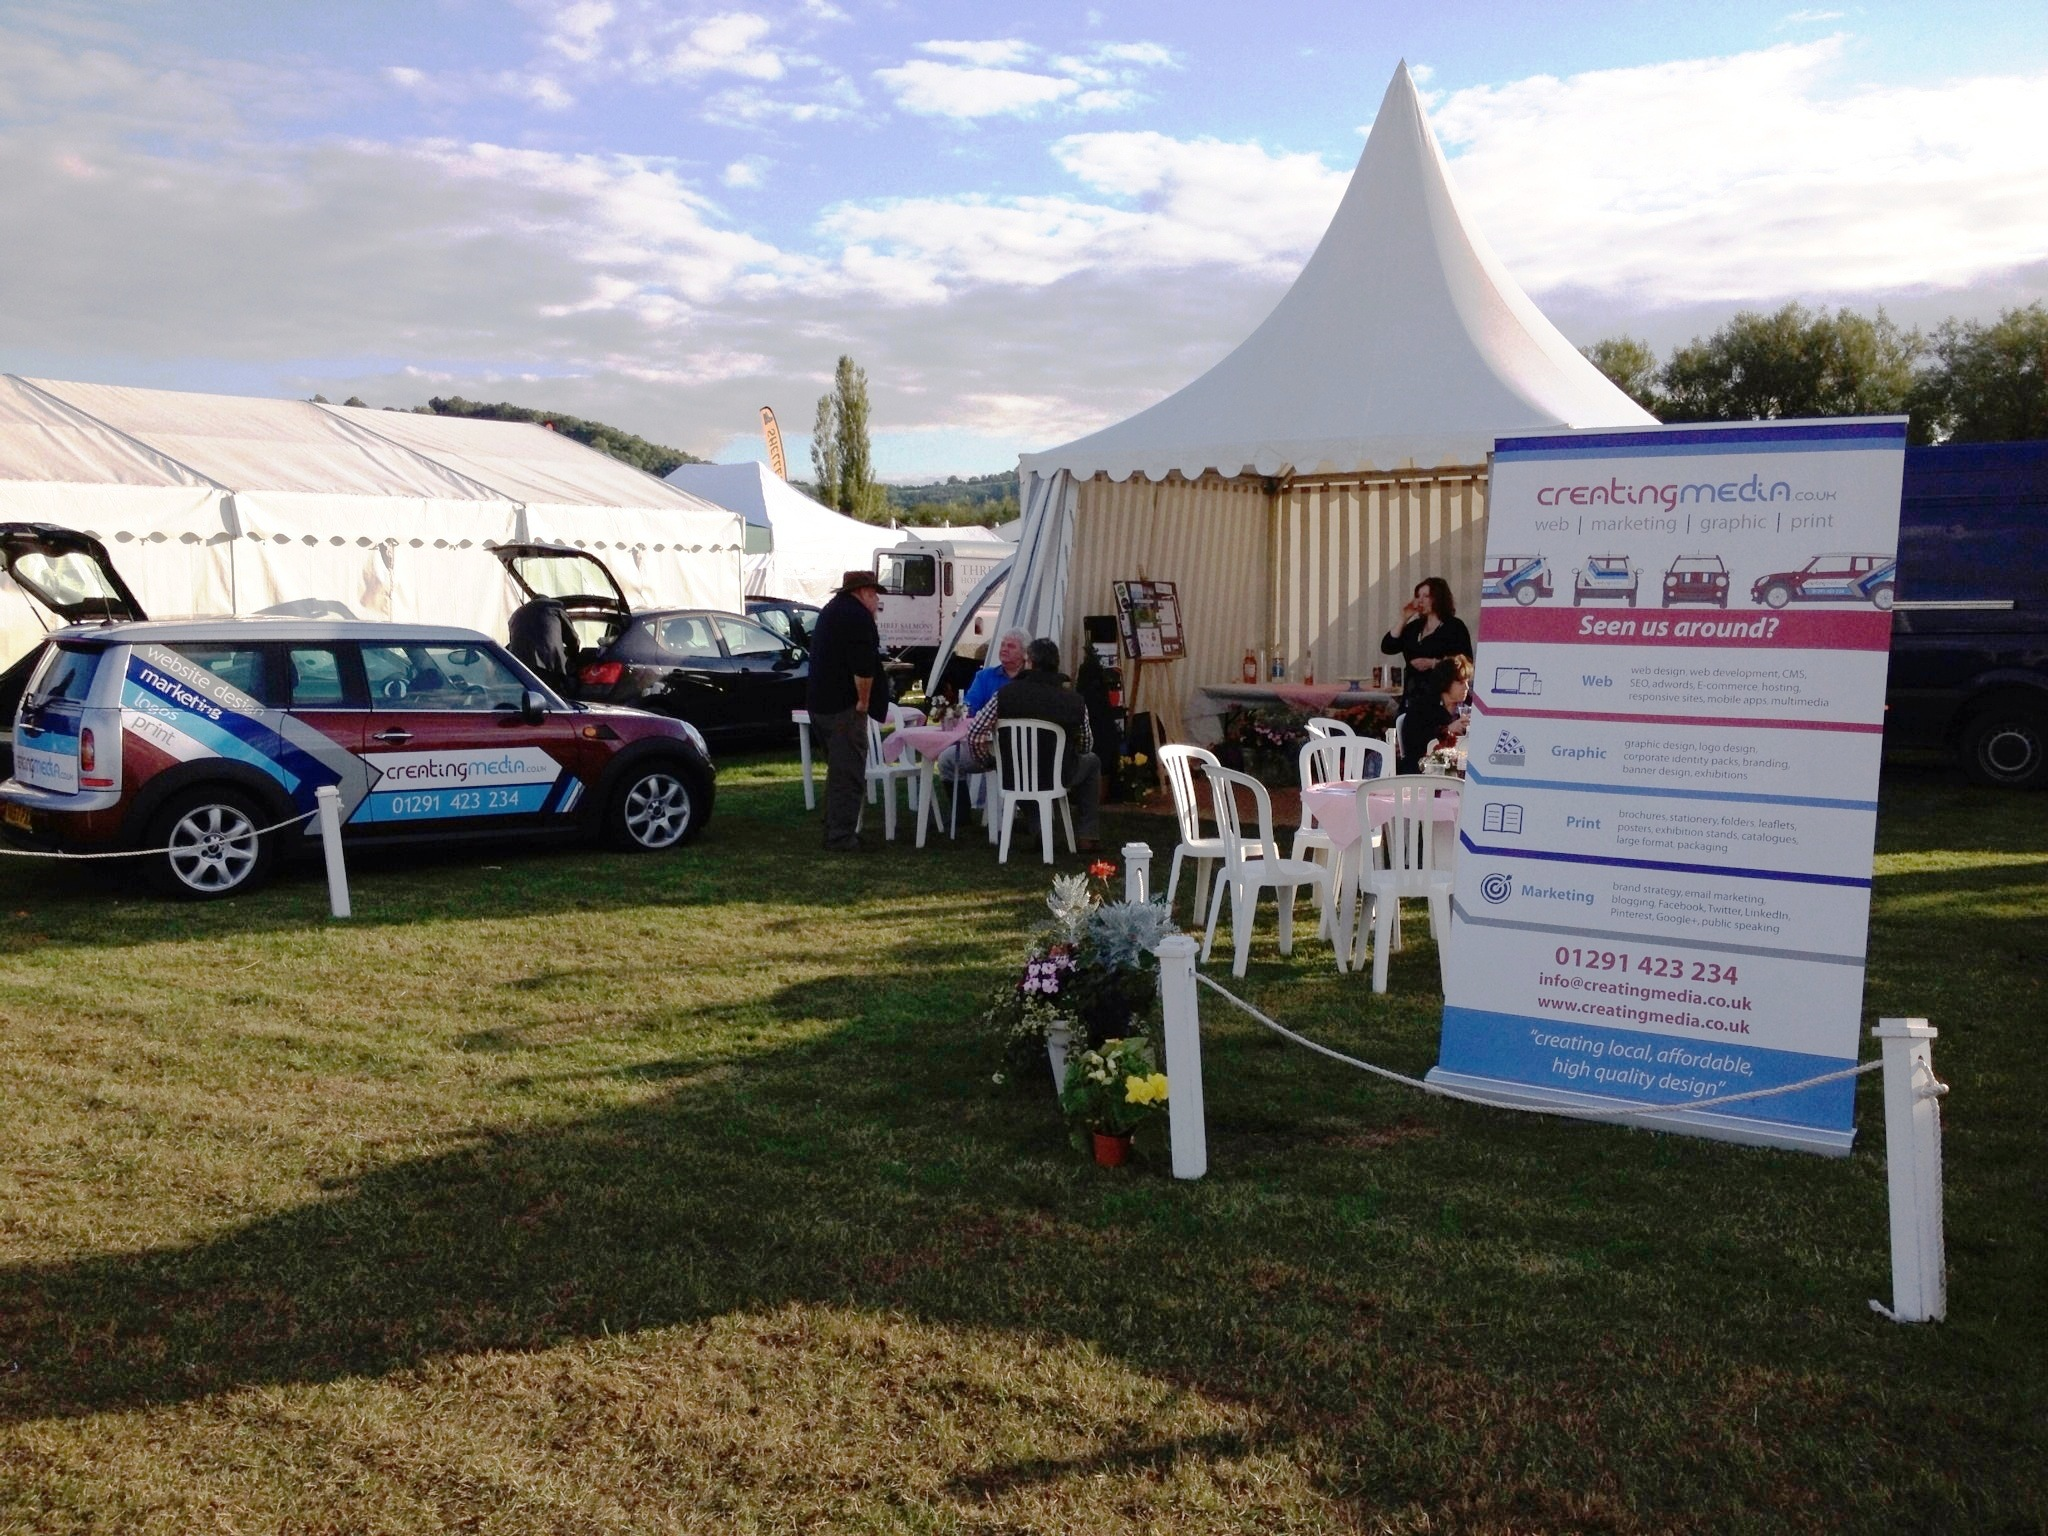 Creating Media work - Usk Show 2014